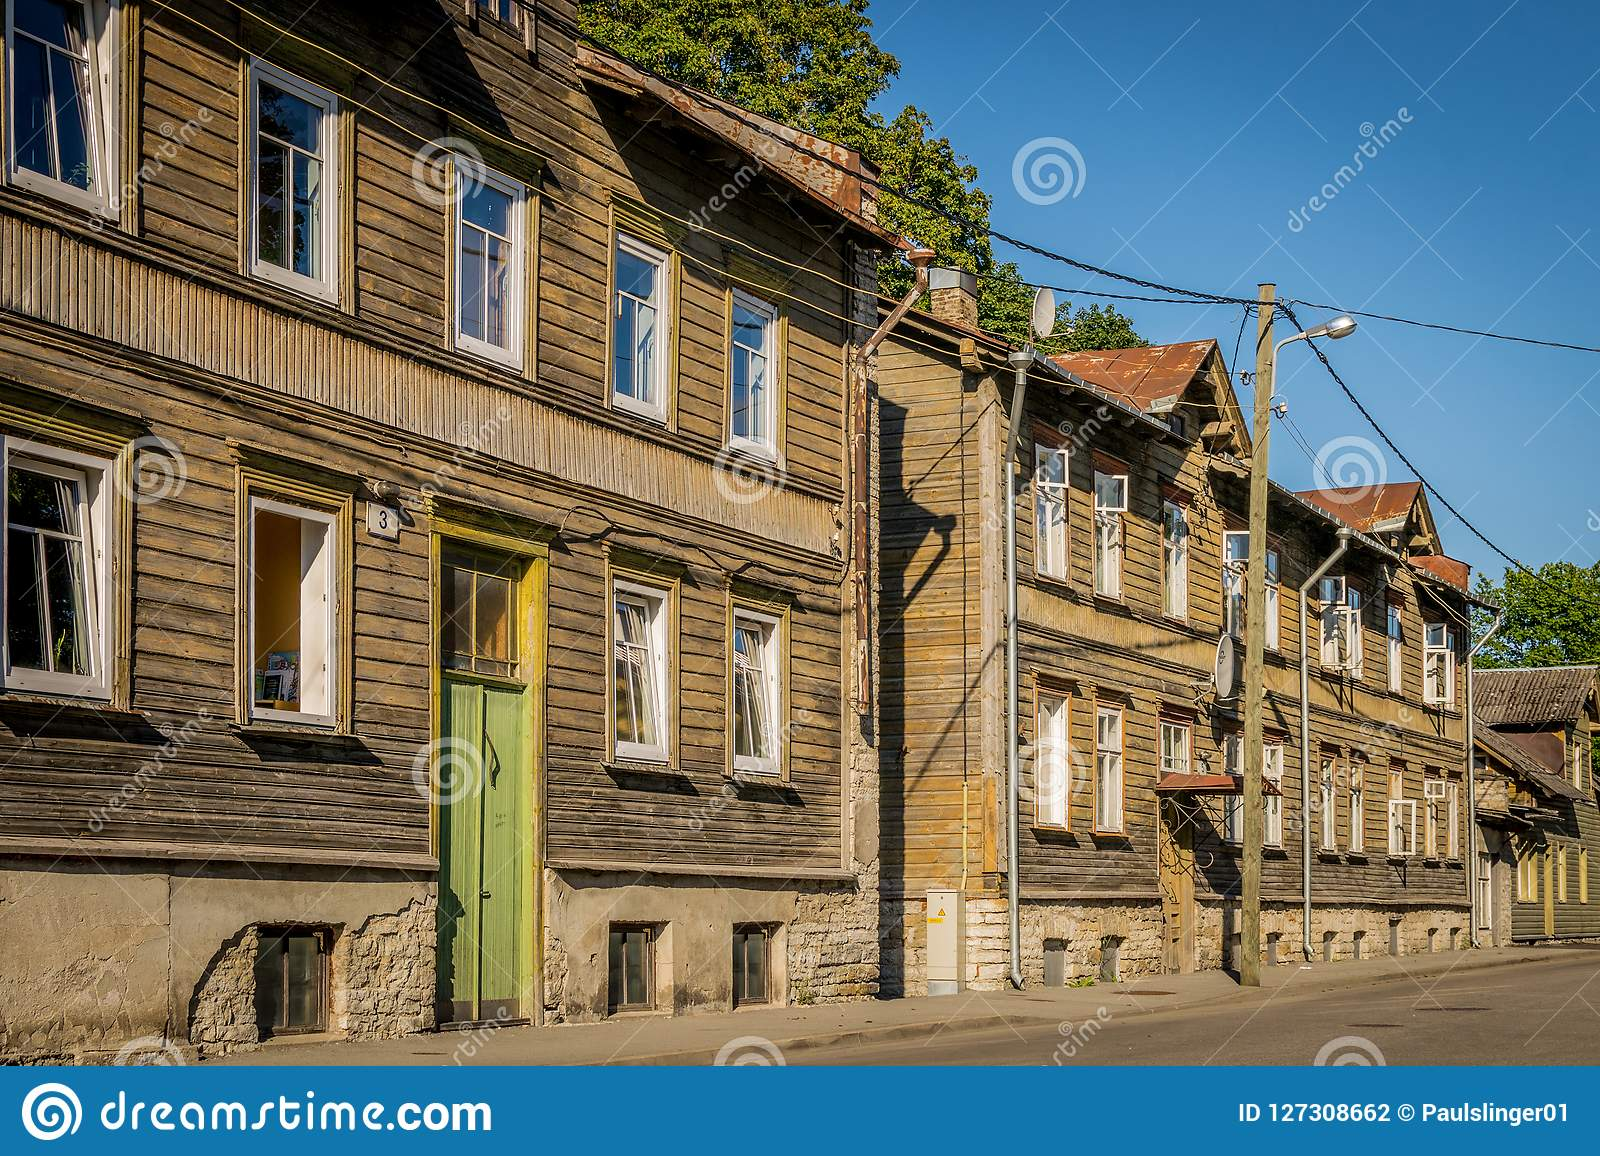 A Row Of Wooden Terraced Houses Stock Photo - Image of